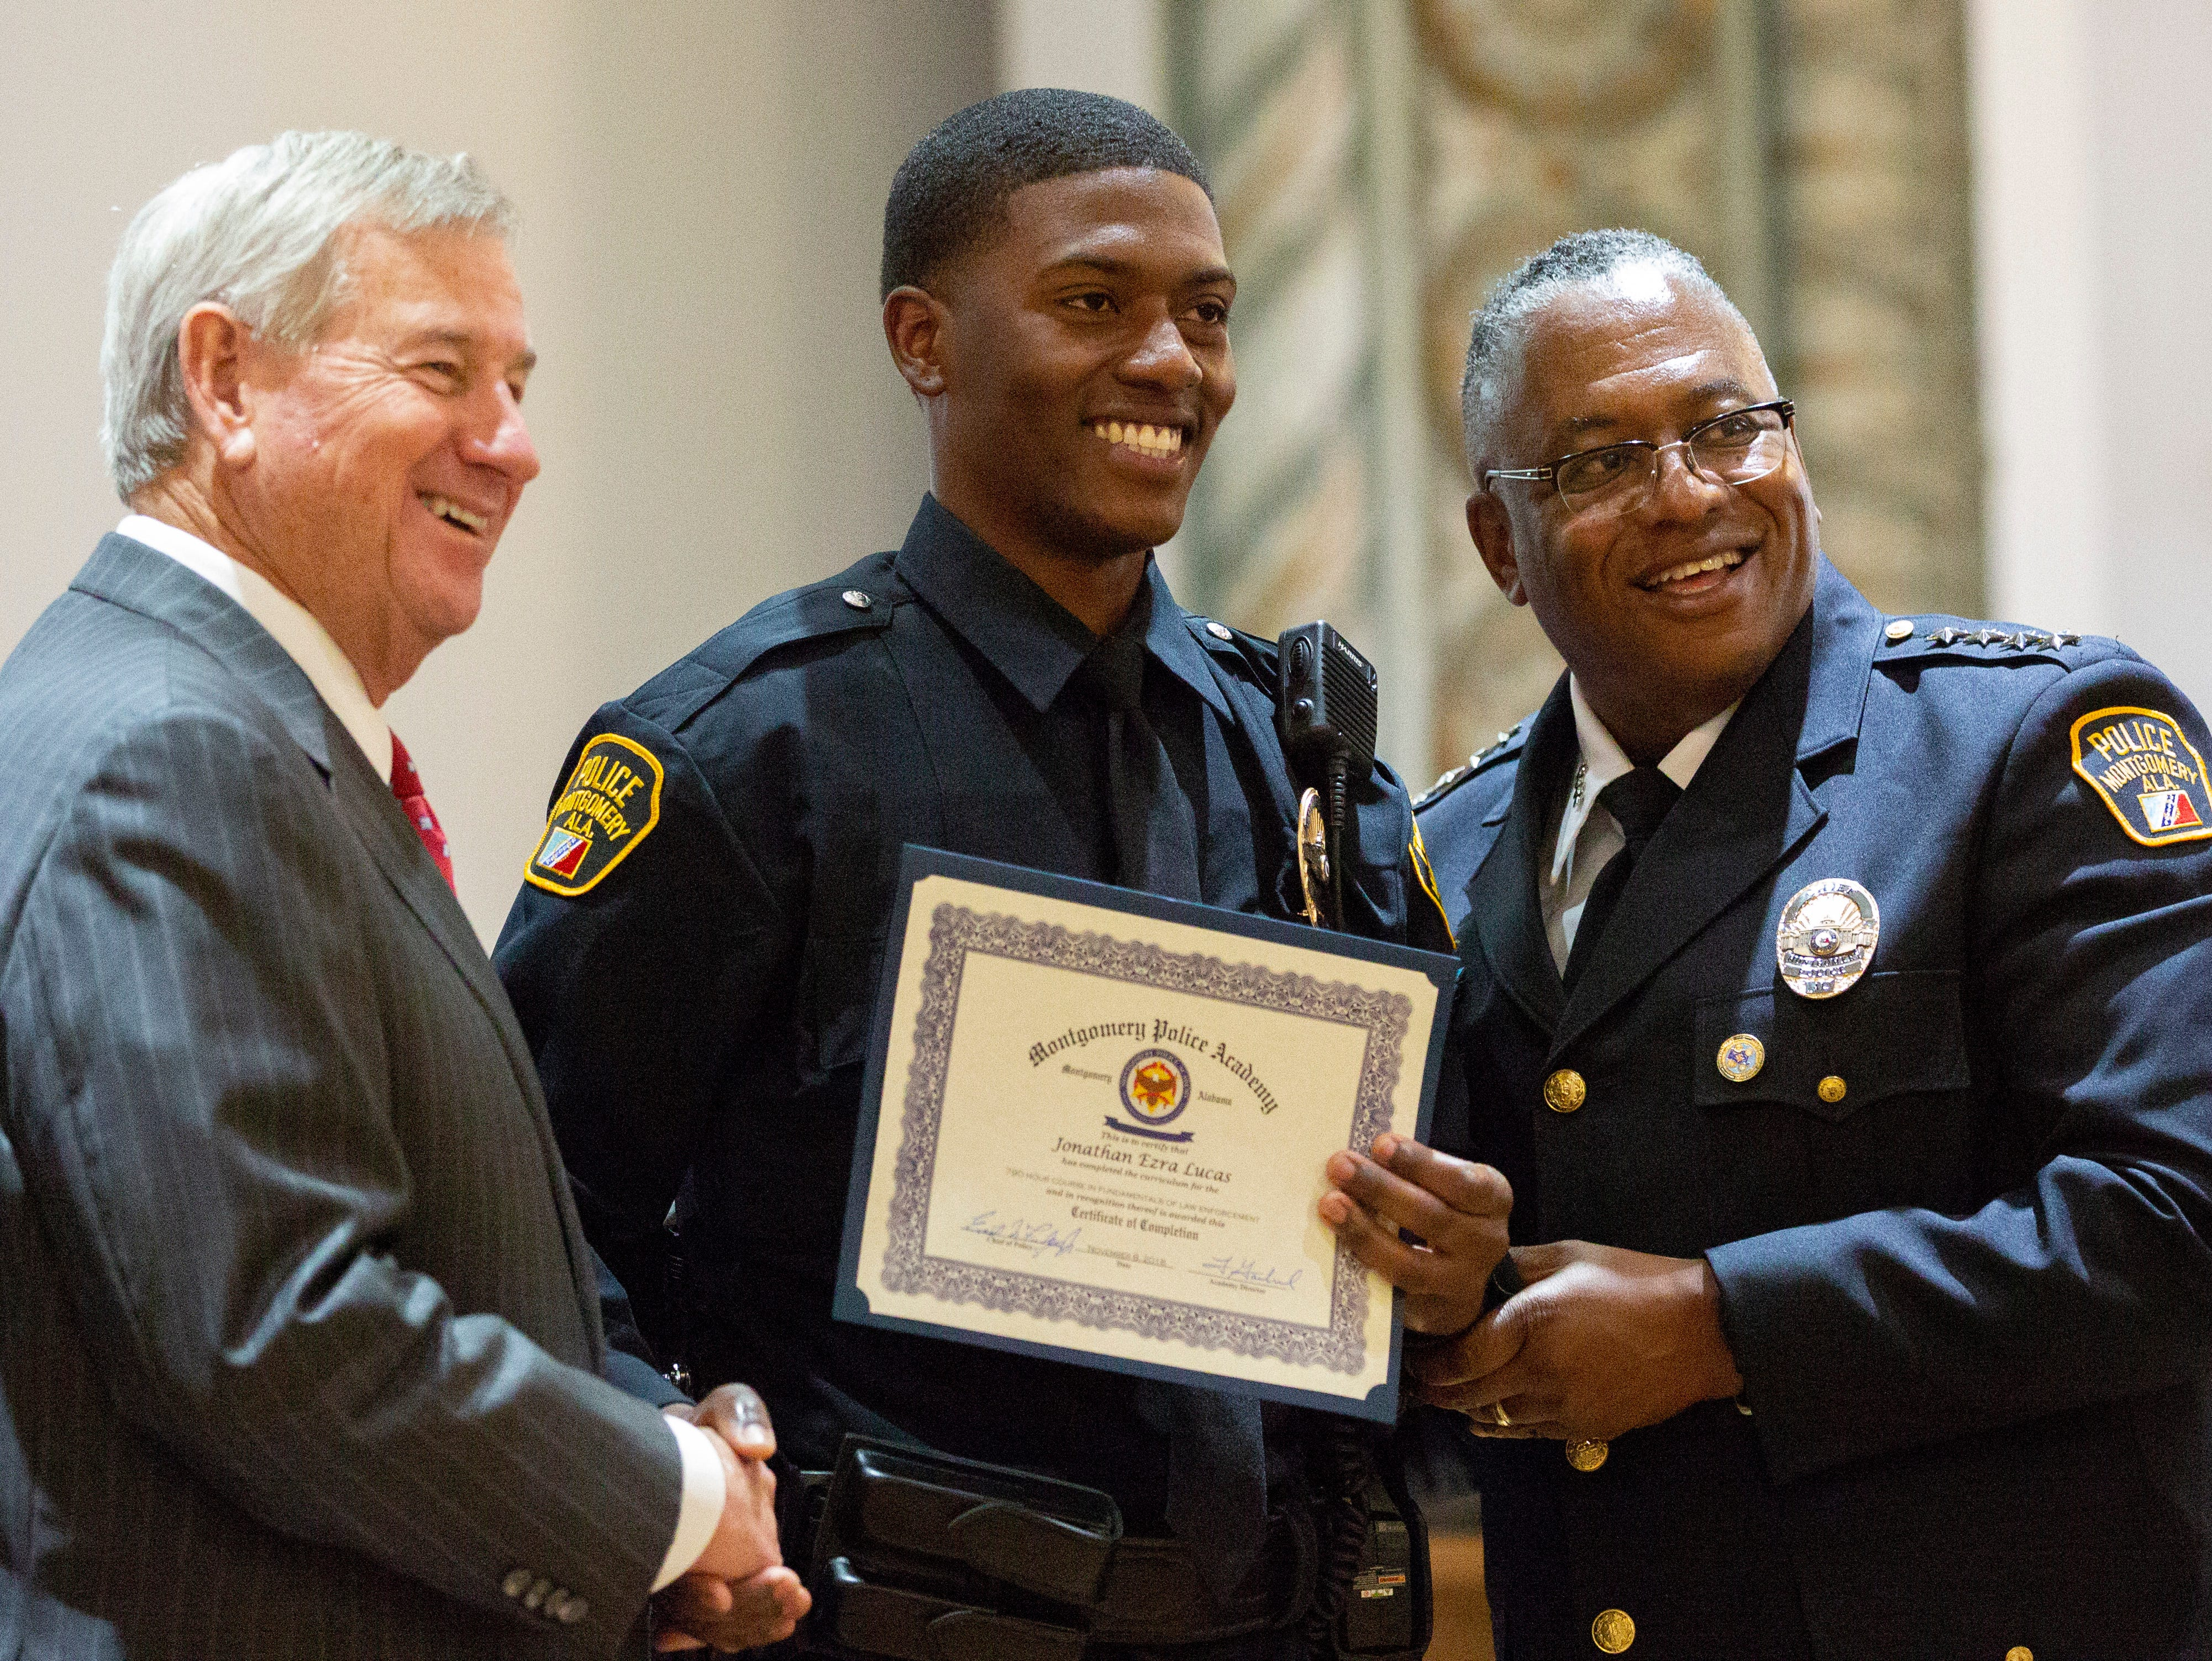 Montgomery police officer Jonathan Lucas poses for a photo after graduating from the academy.